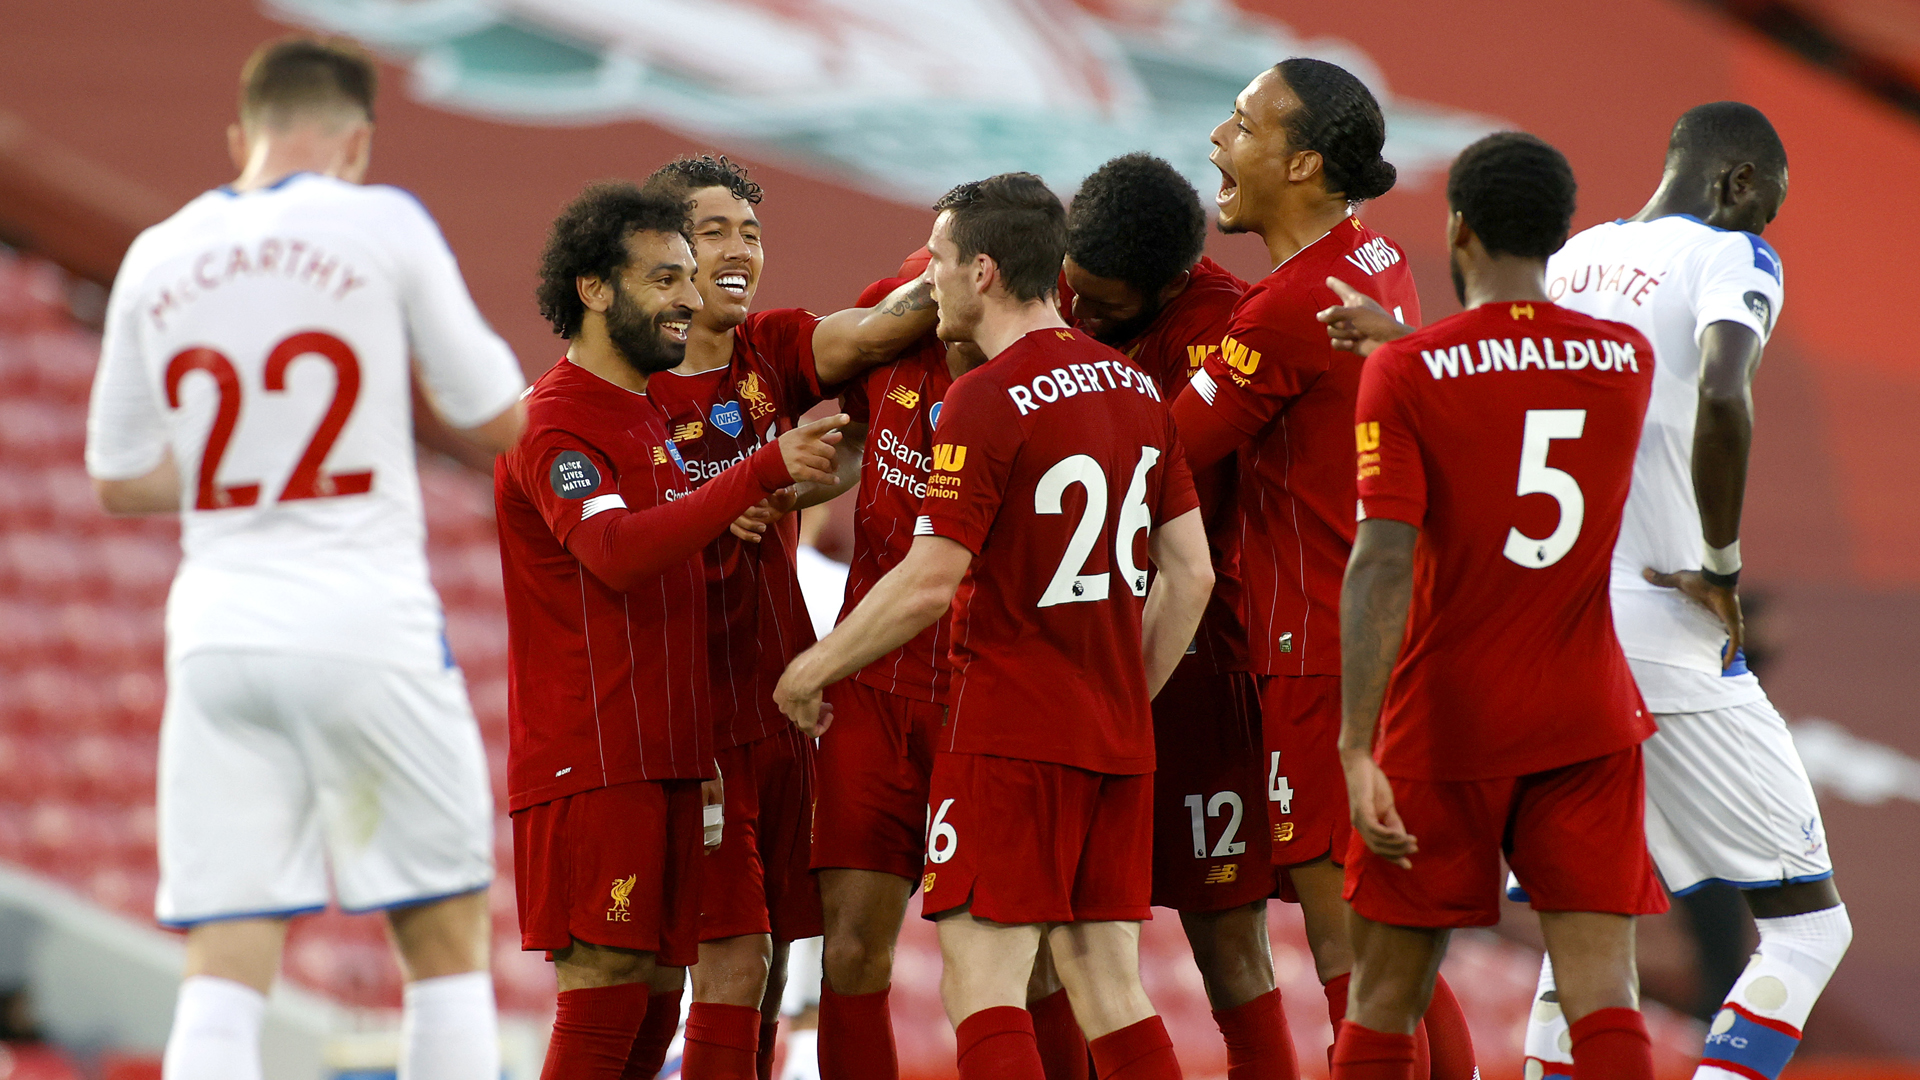 It's just a matter of how many points they win it by – Hodgson congratulates Liverpool